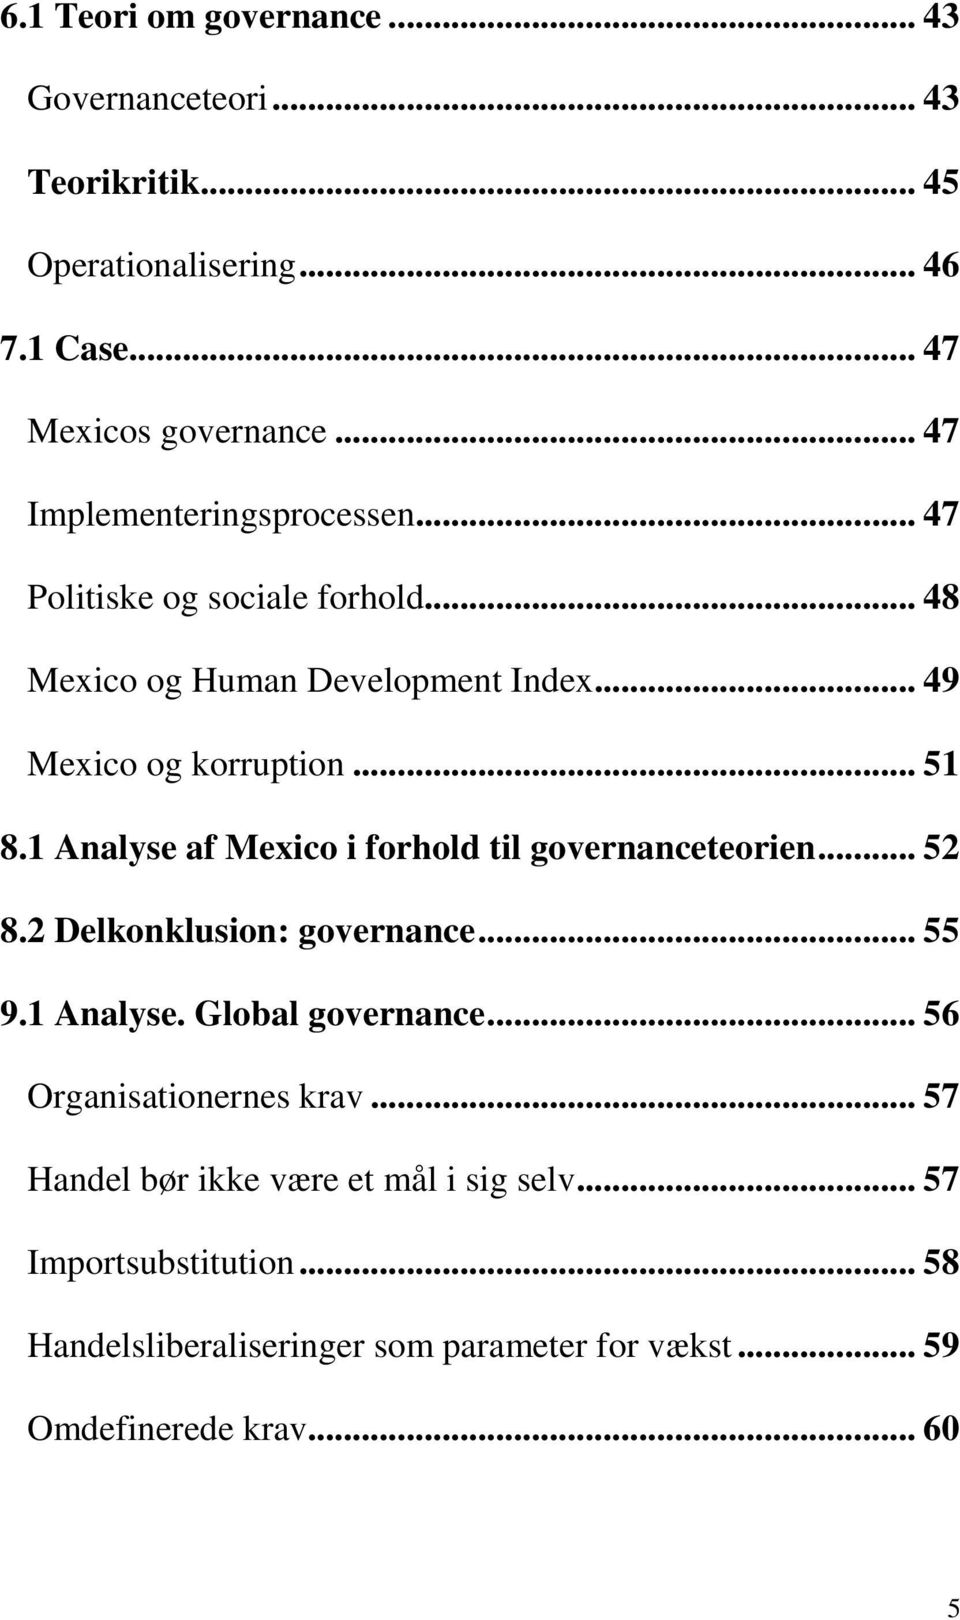 1 Analyse af Mexico i forhold til governanceteorien... 52 8.2 Delkonklusion: governance... 55 9.1 Analyse. Global governance.